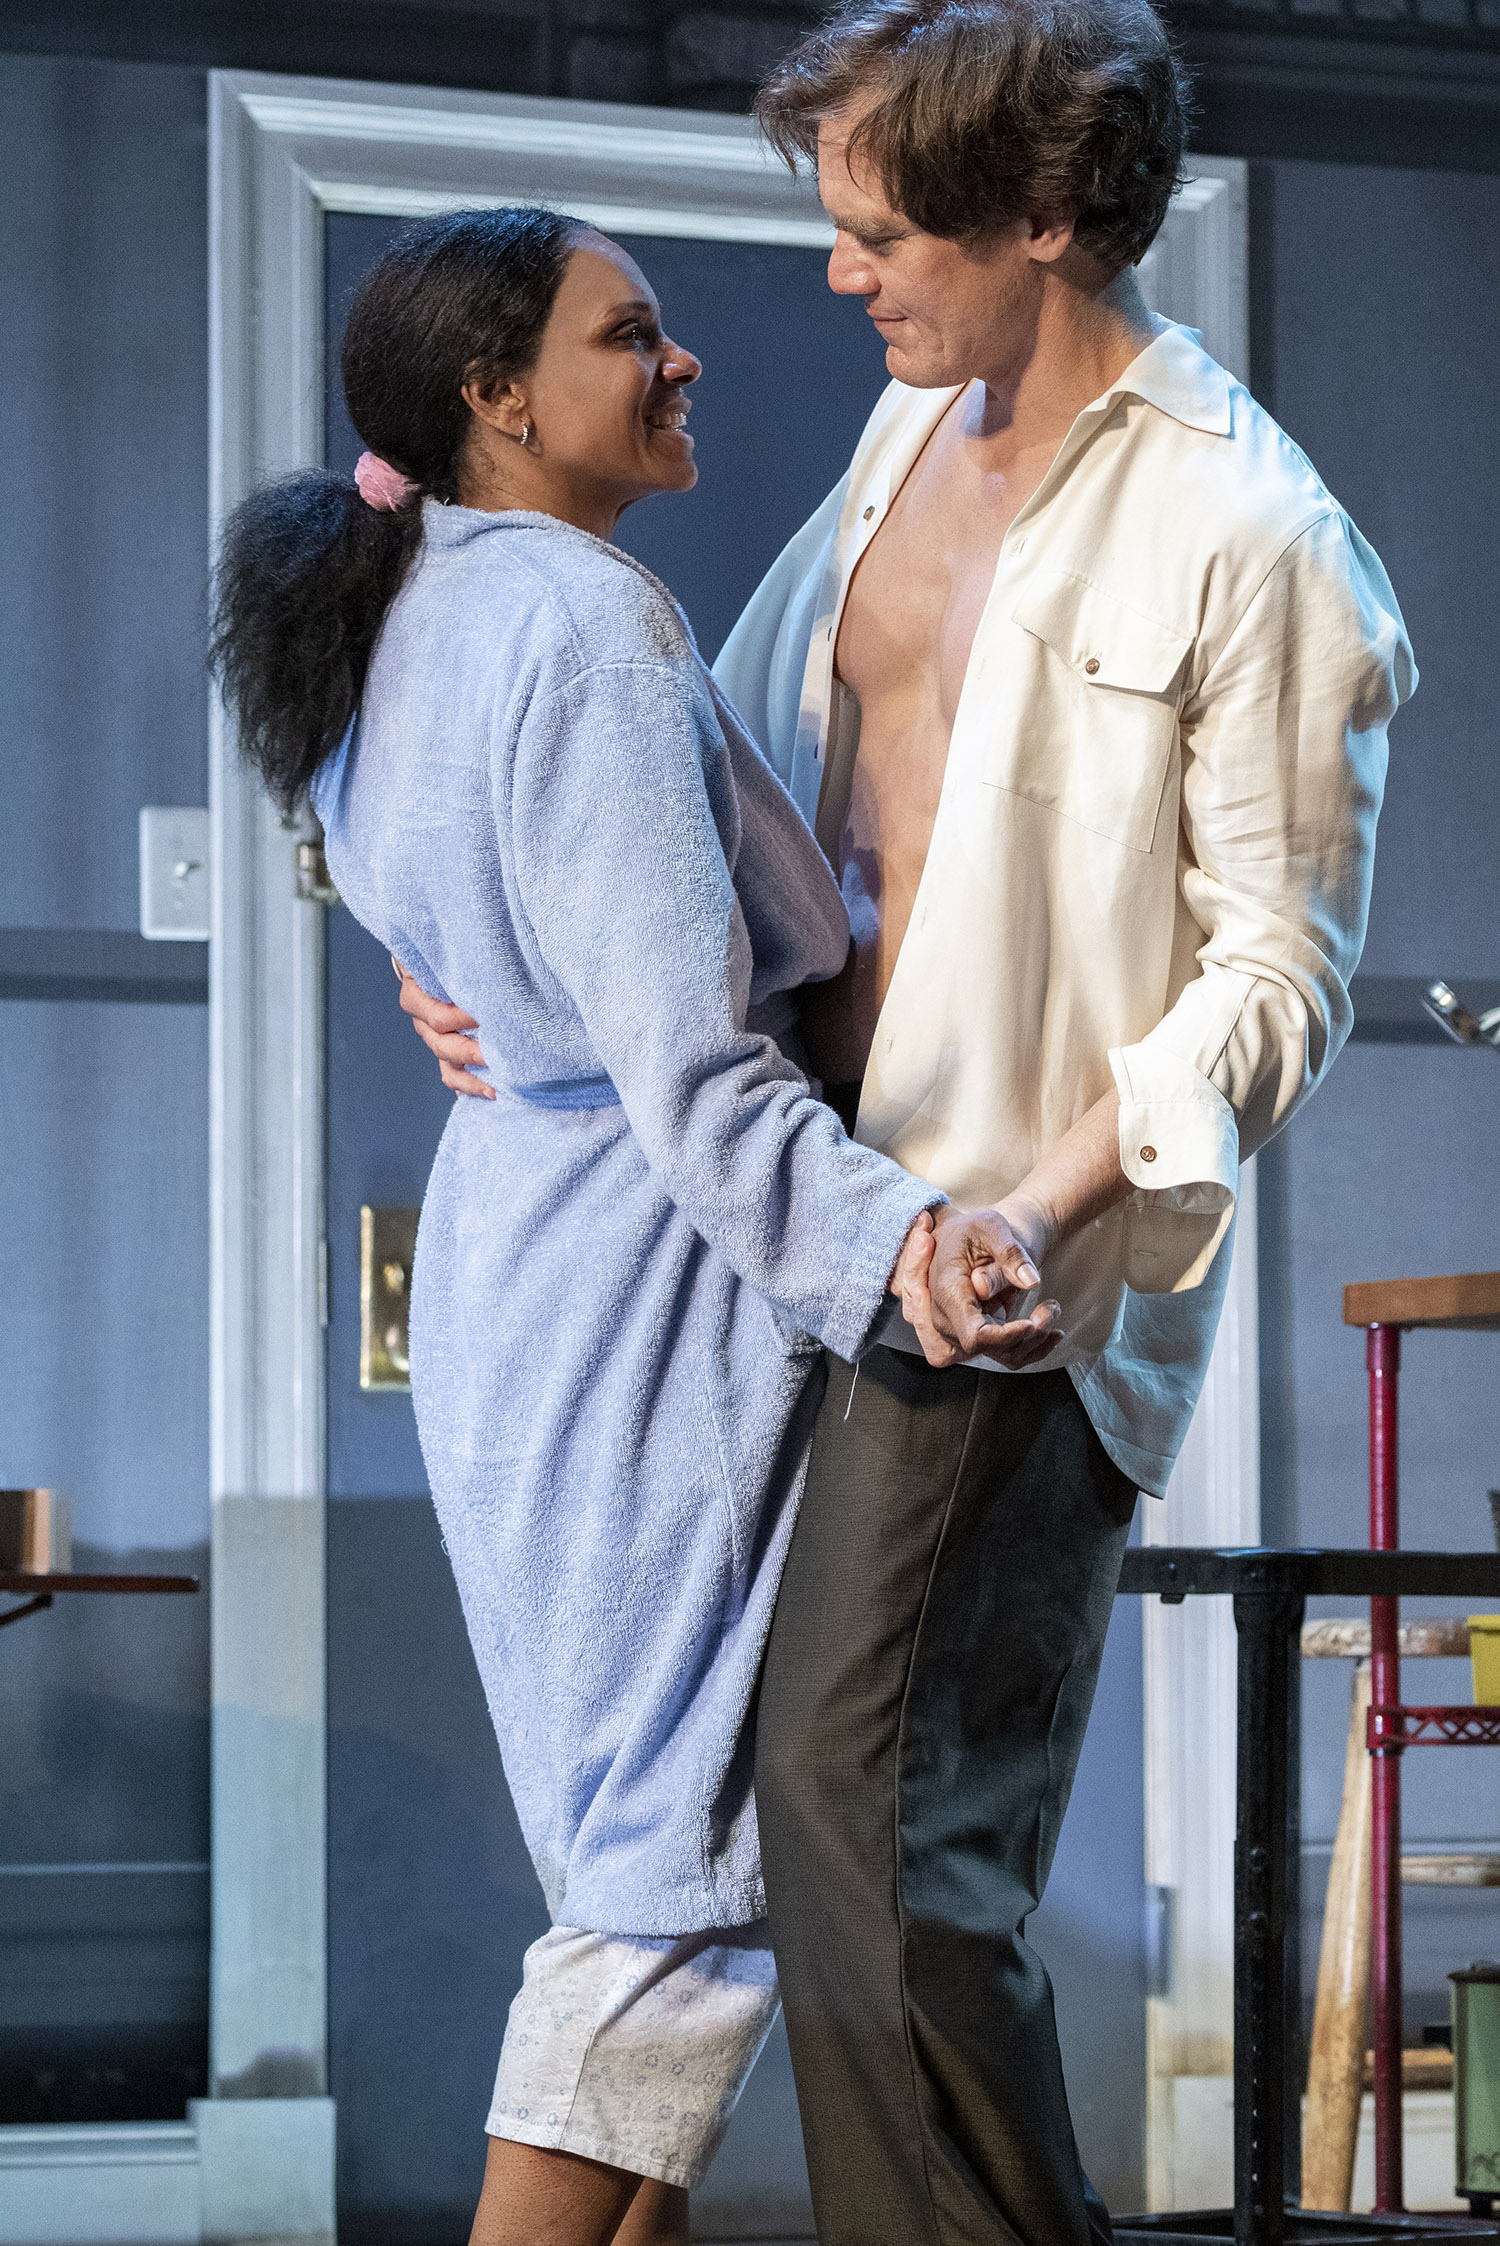 Audra McDonald and Michael Shannon in Terrence McNally's Frankie and Johnny in the Clair de Lune. Photo by Deen van Meer.